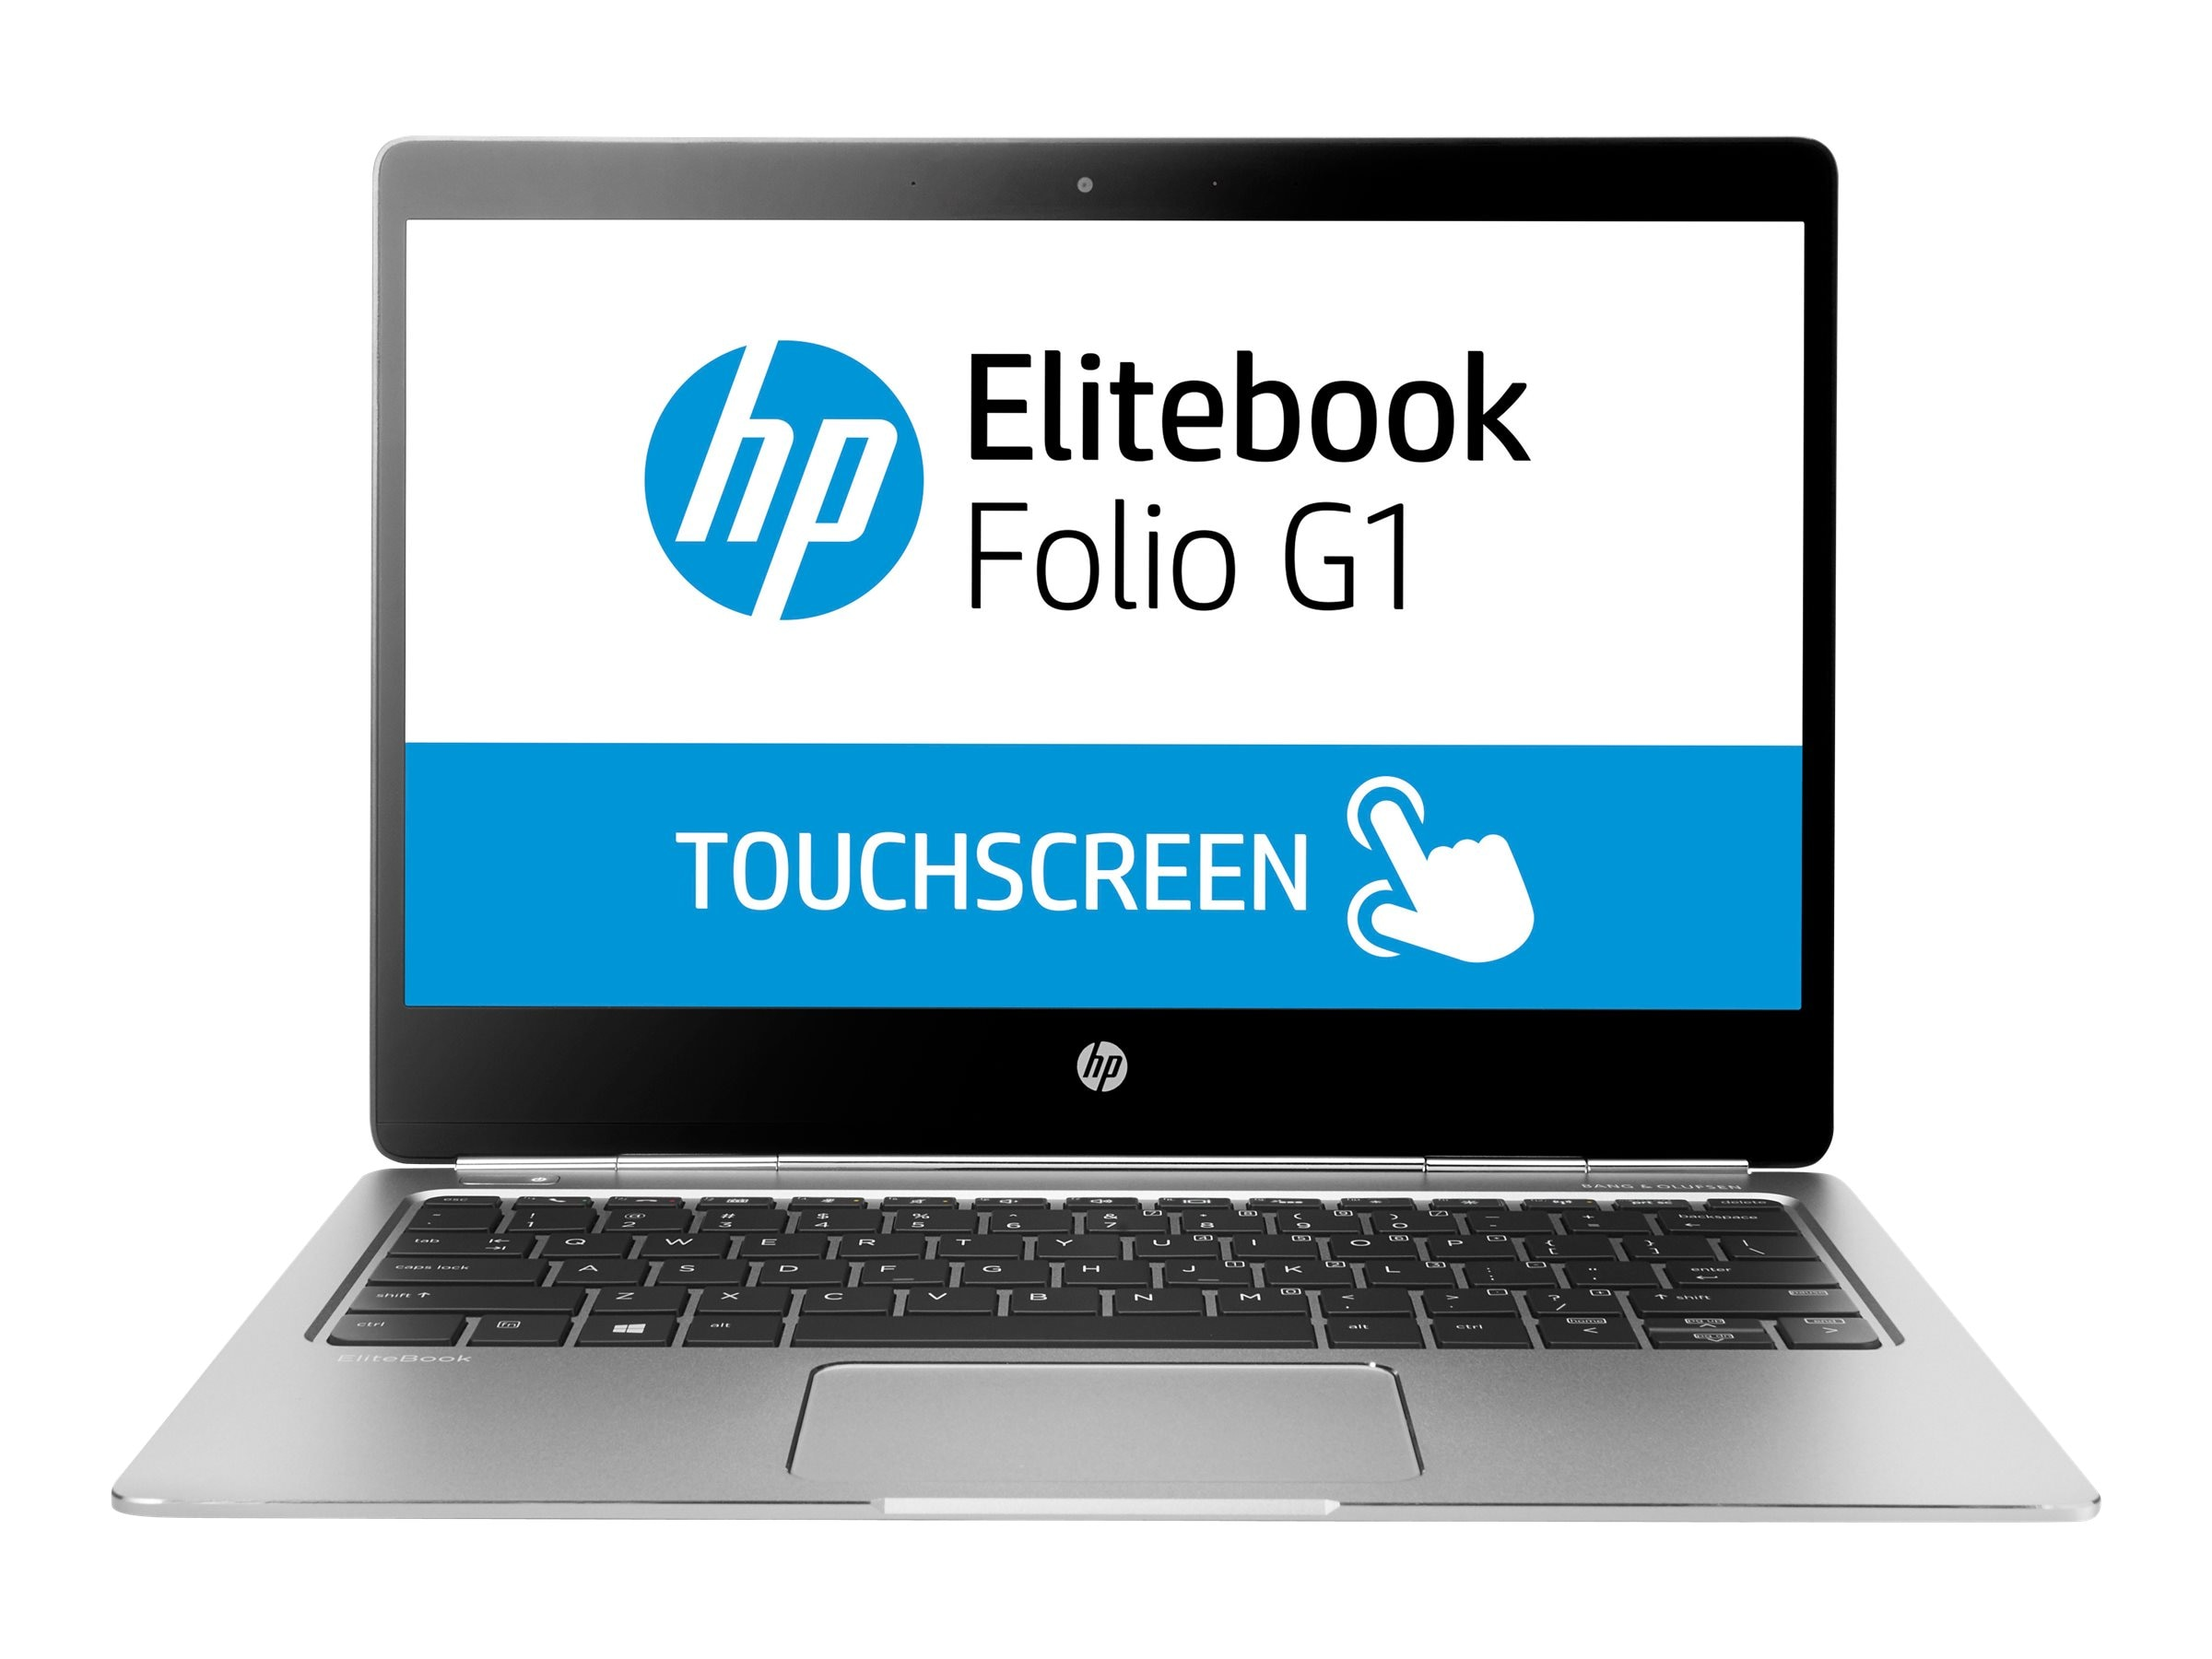 HP EliteBook Core M7-6Y75 1.2GHz 8GB 256GB SSD ac abgn BT WC 4C 12.5 FHD W10P64